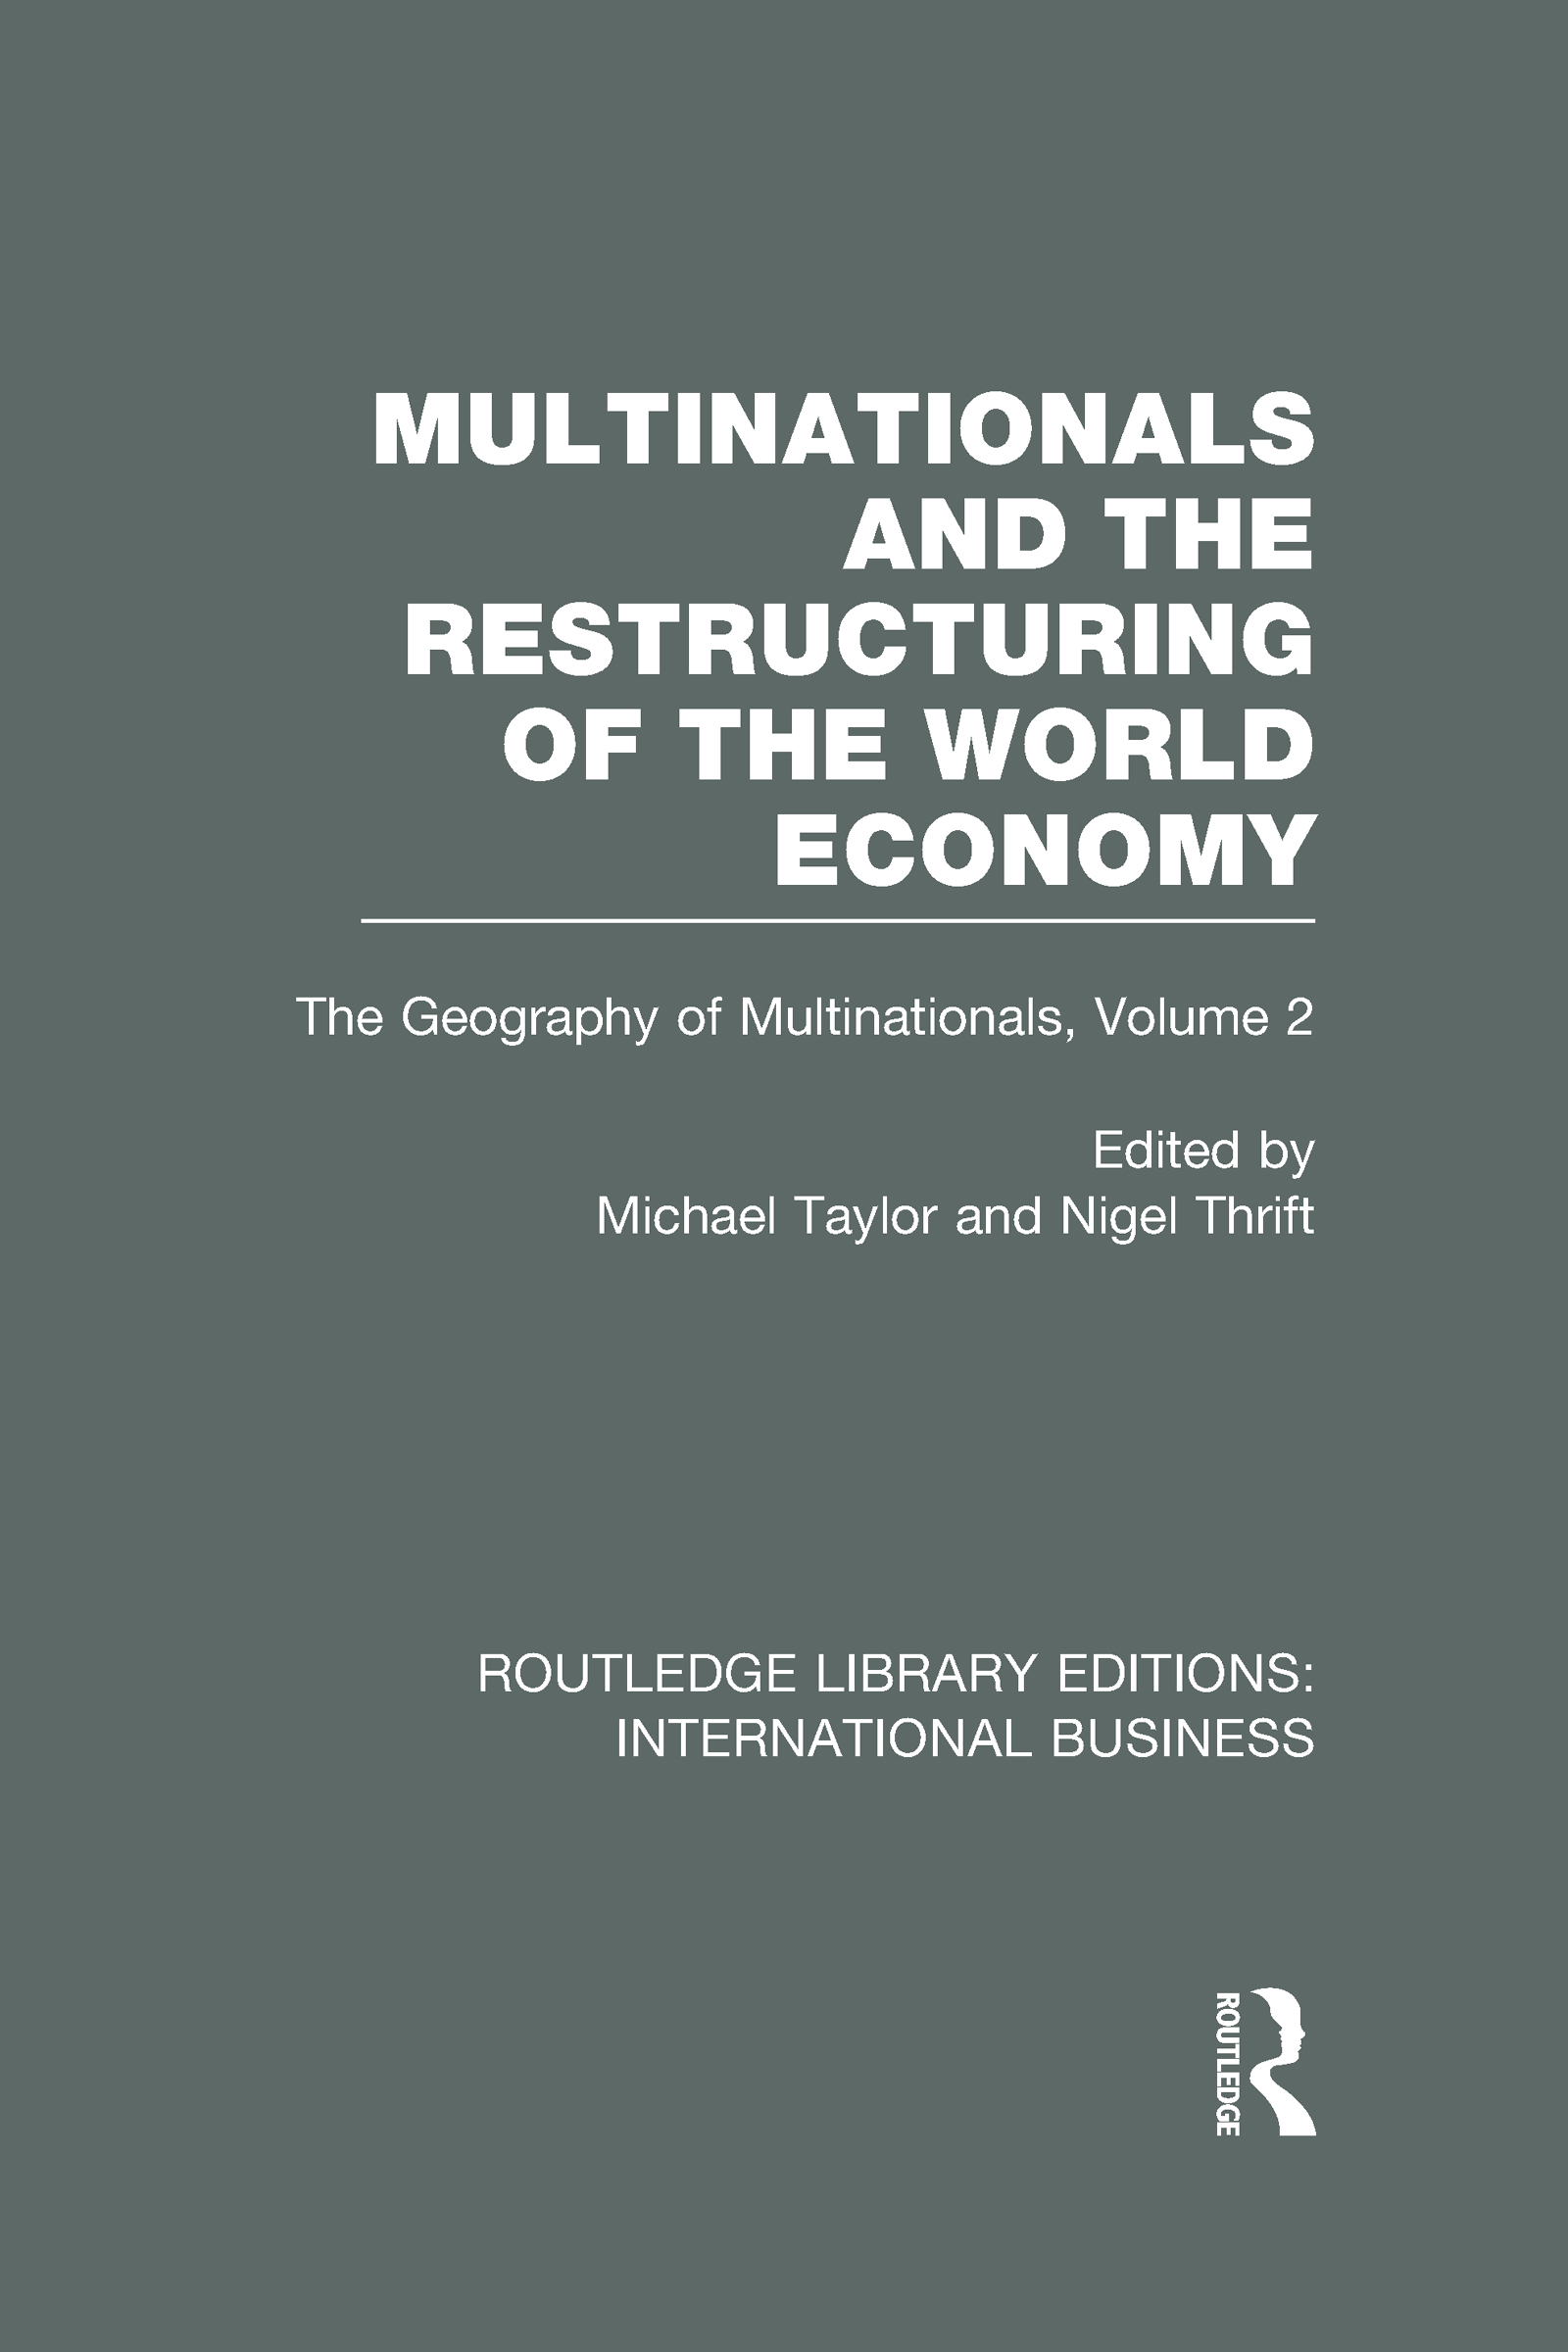 Multinationals and the Restructuring of the World Economy (RLE International Business): The Geography of the Multinationals Volume 2 (Hardback) book cover